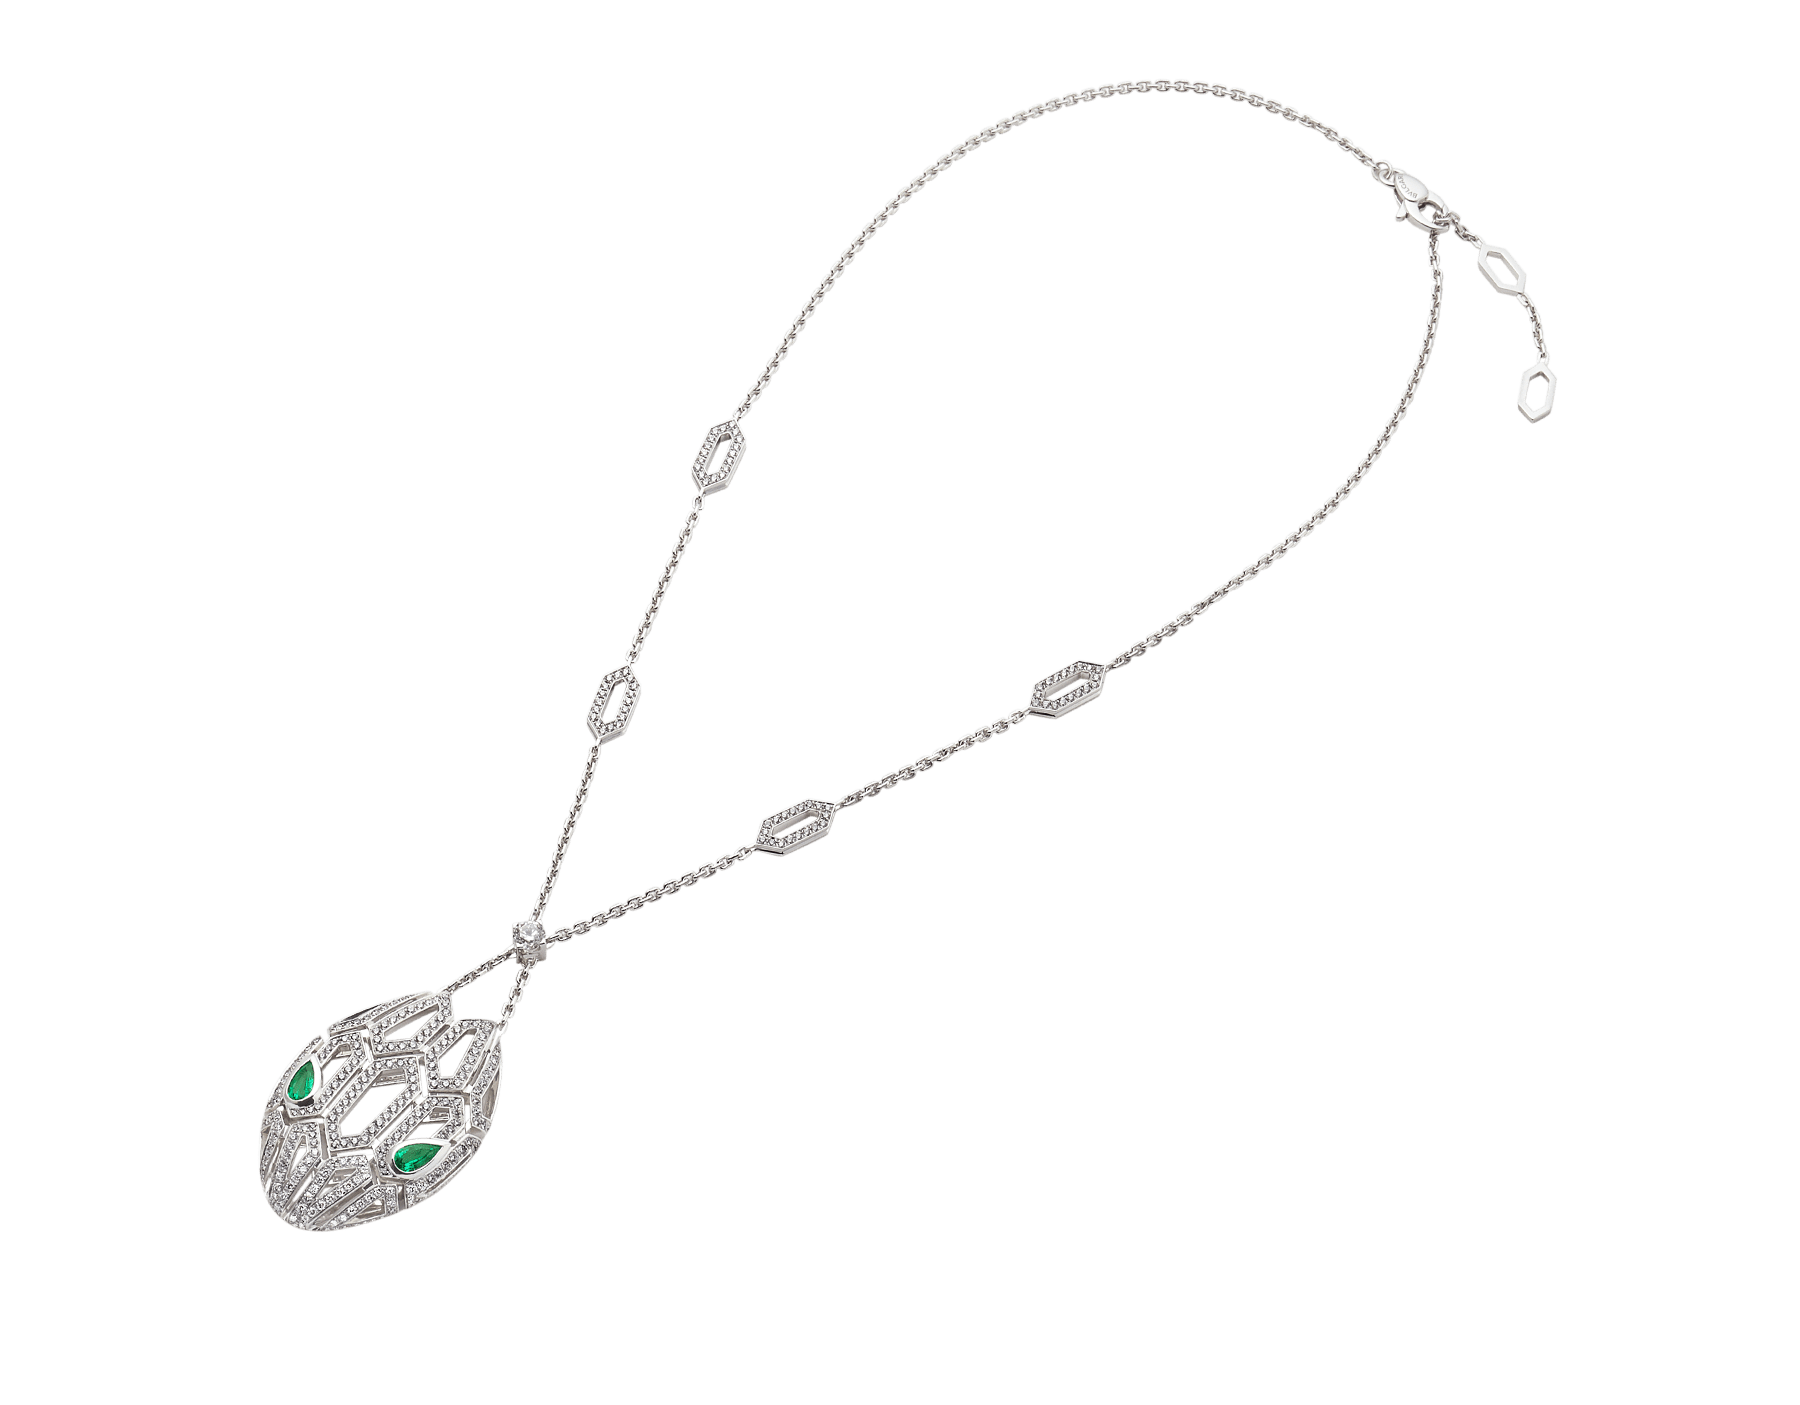 Serpenti necklace in 18 kt white gold, set with emerald eyes and pavé diamonds both on the chain and the pendant. 352752 image 2